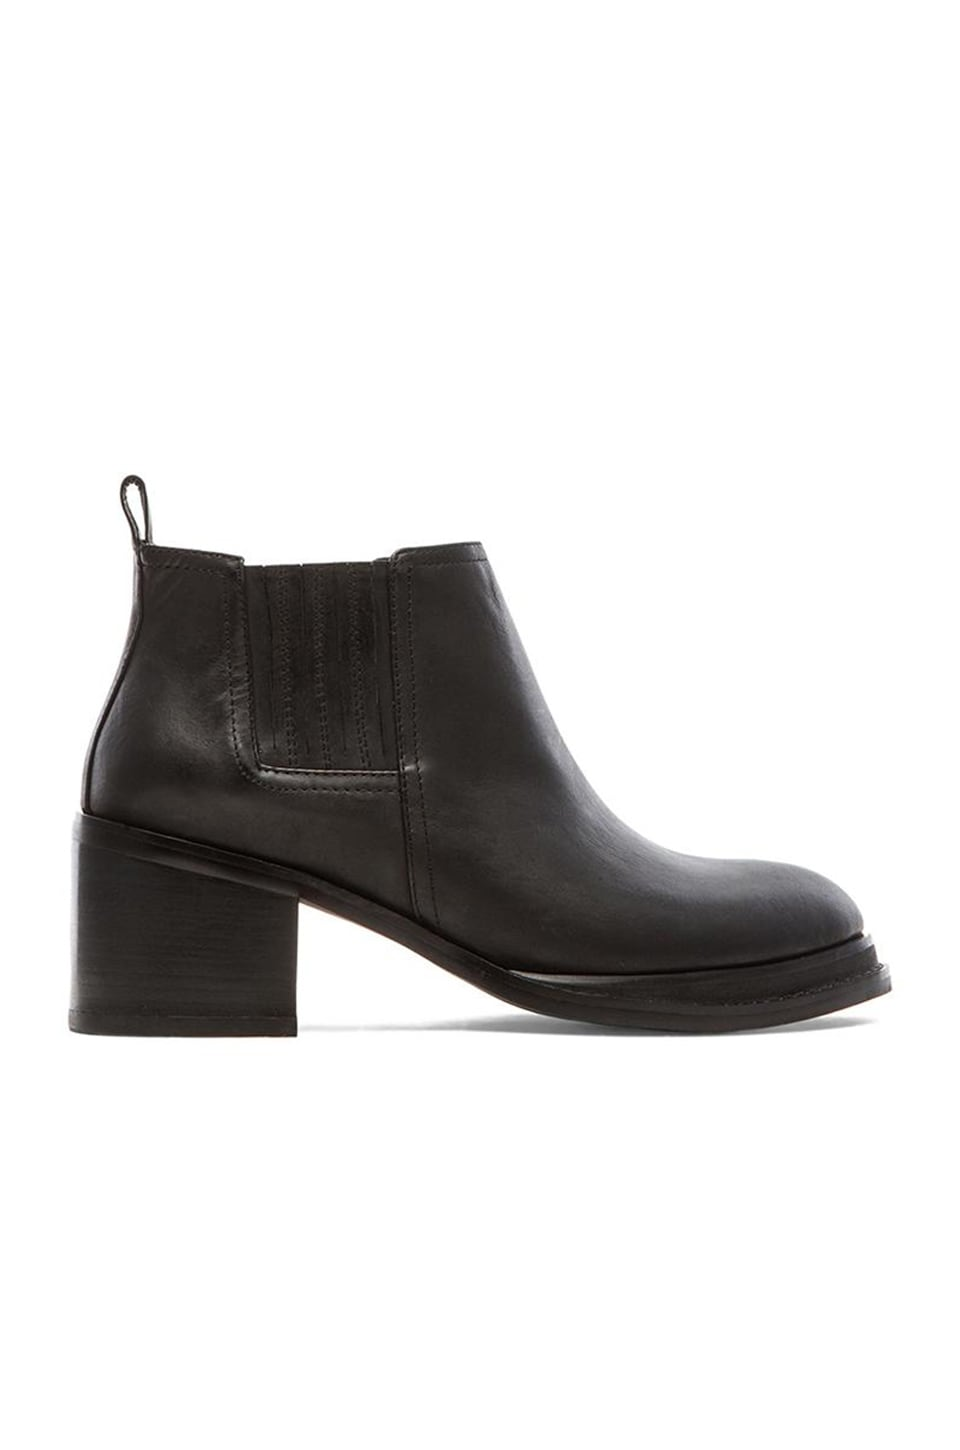 Jeffrey Campbell Eldin Bootie in Black